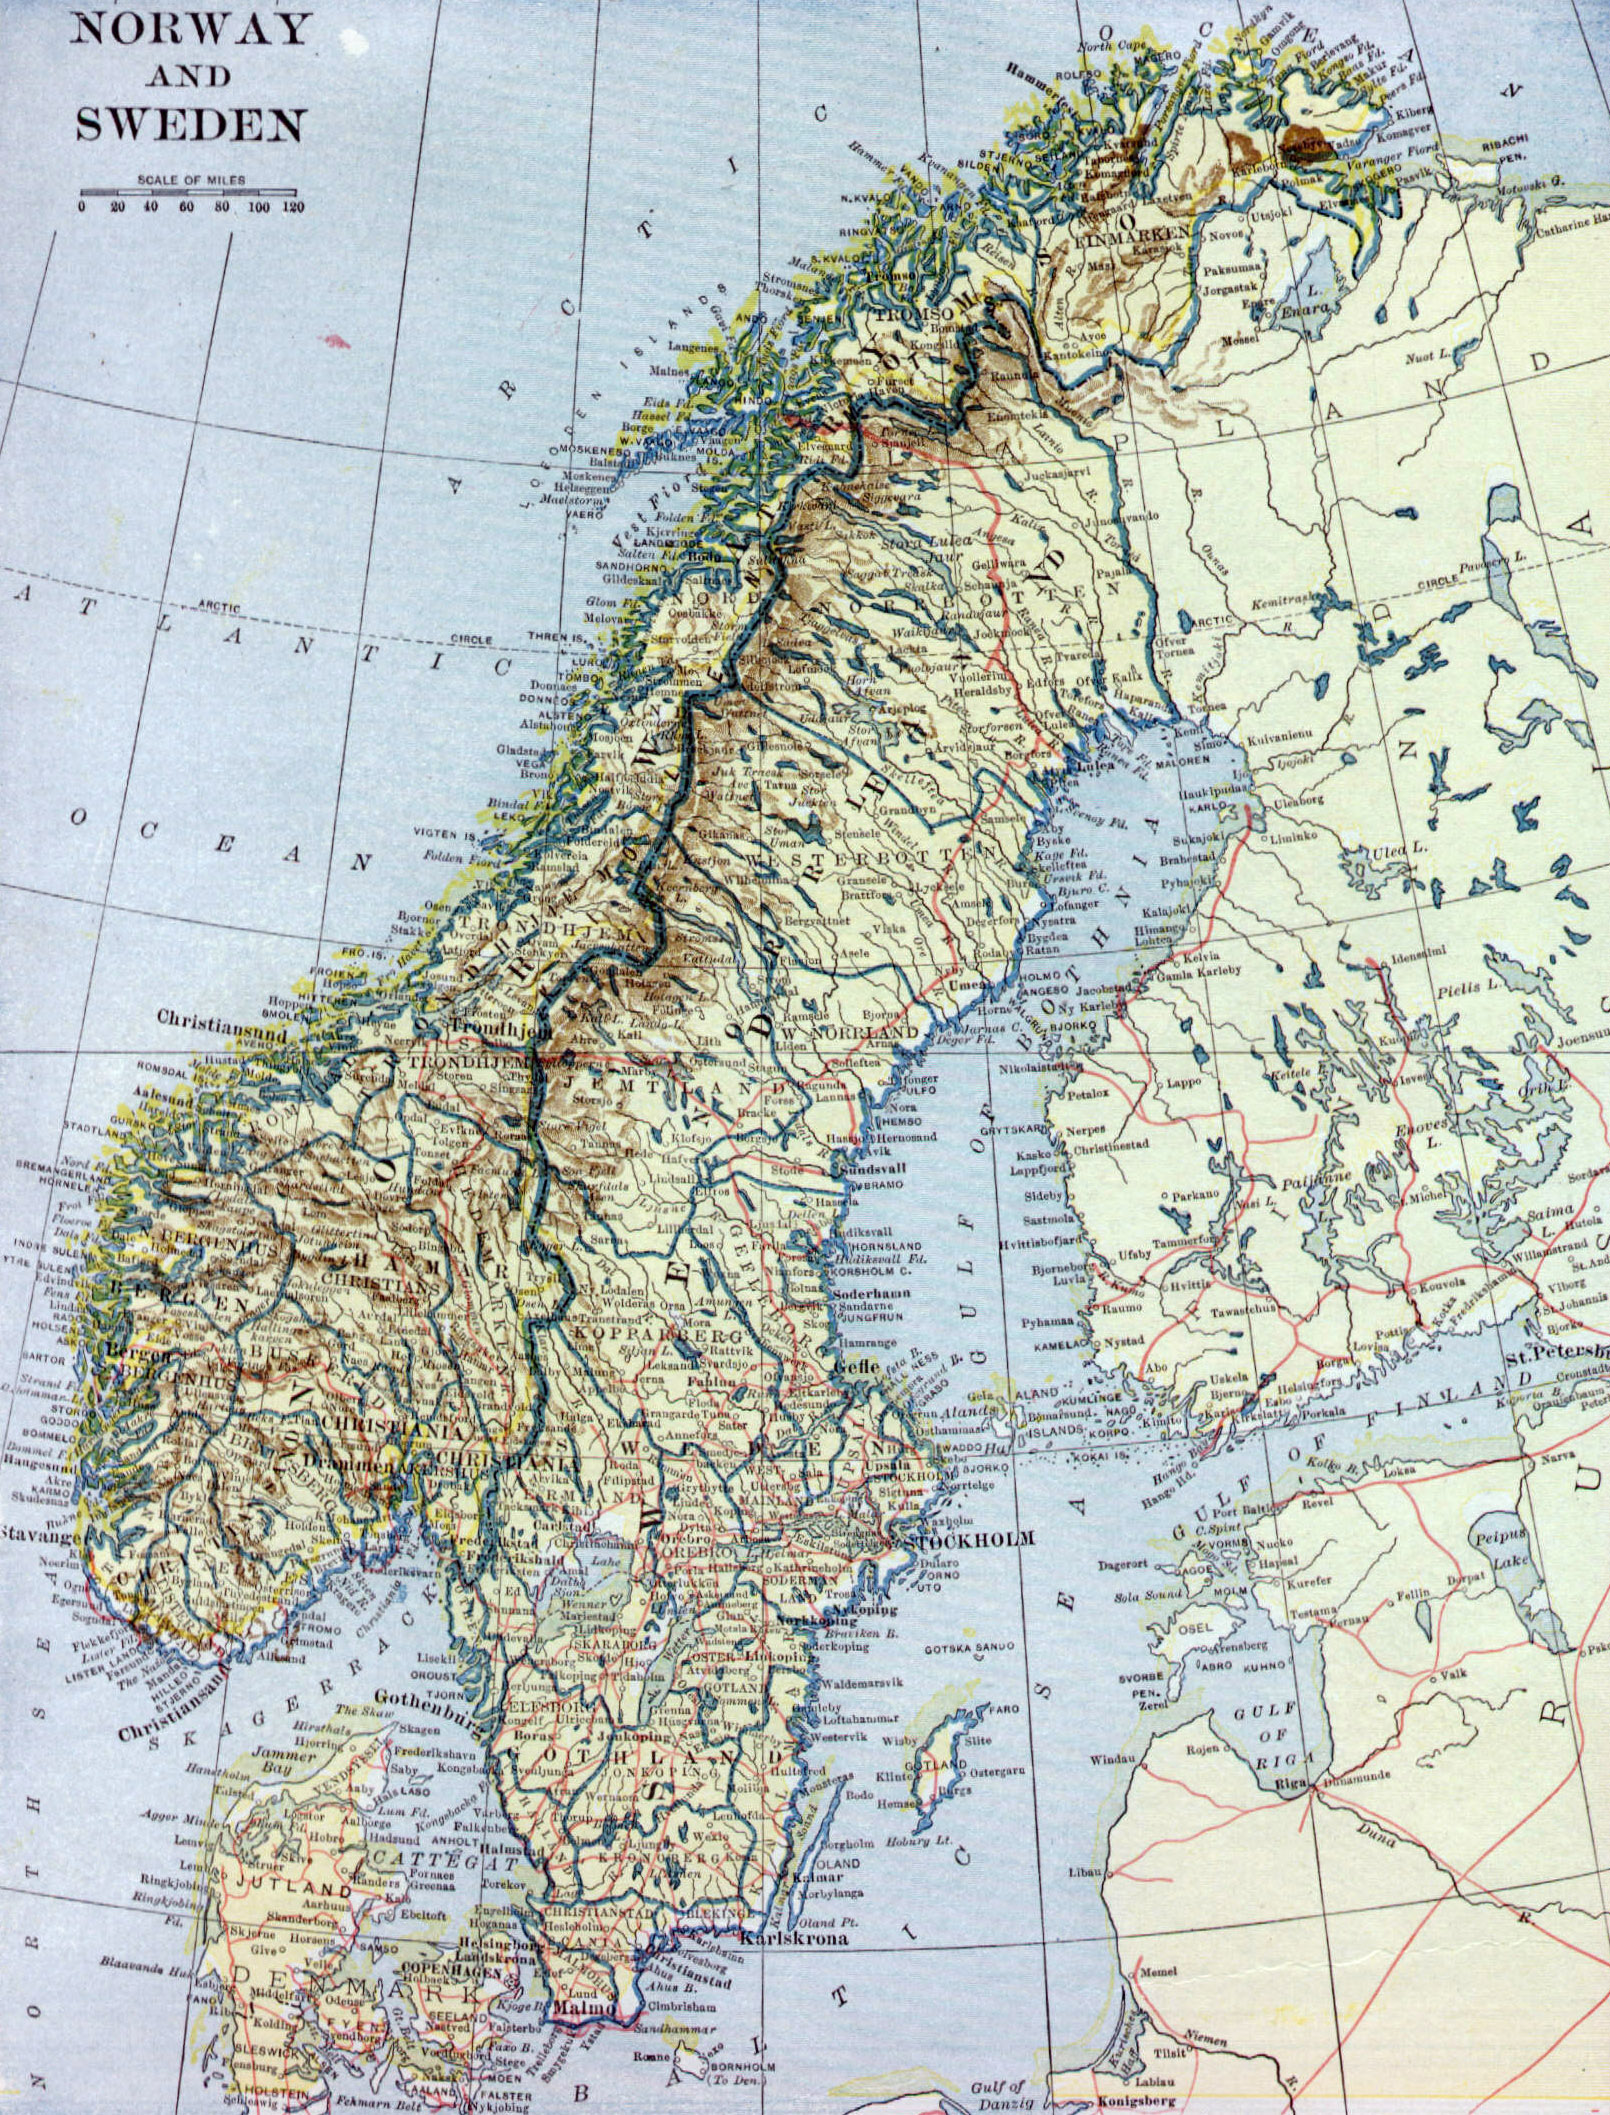 Large Old Map Of Norway And Sweden With Relief Roads And Cities - Map of cities in norway